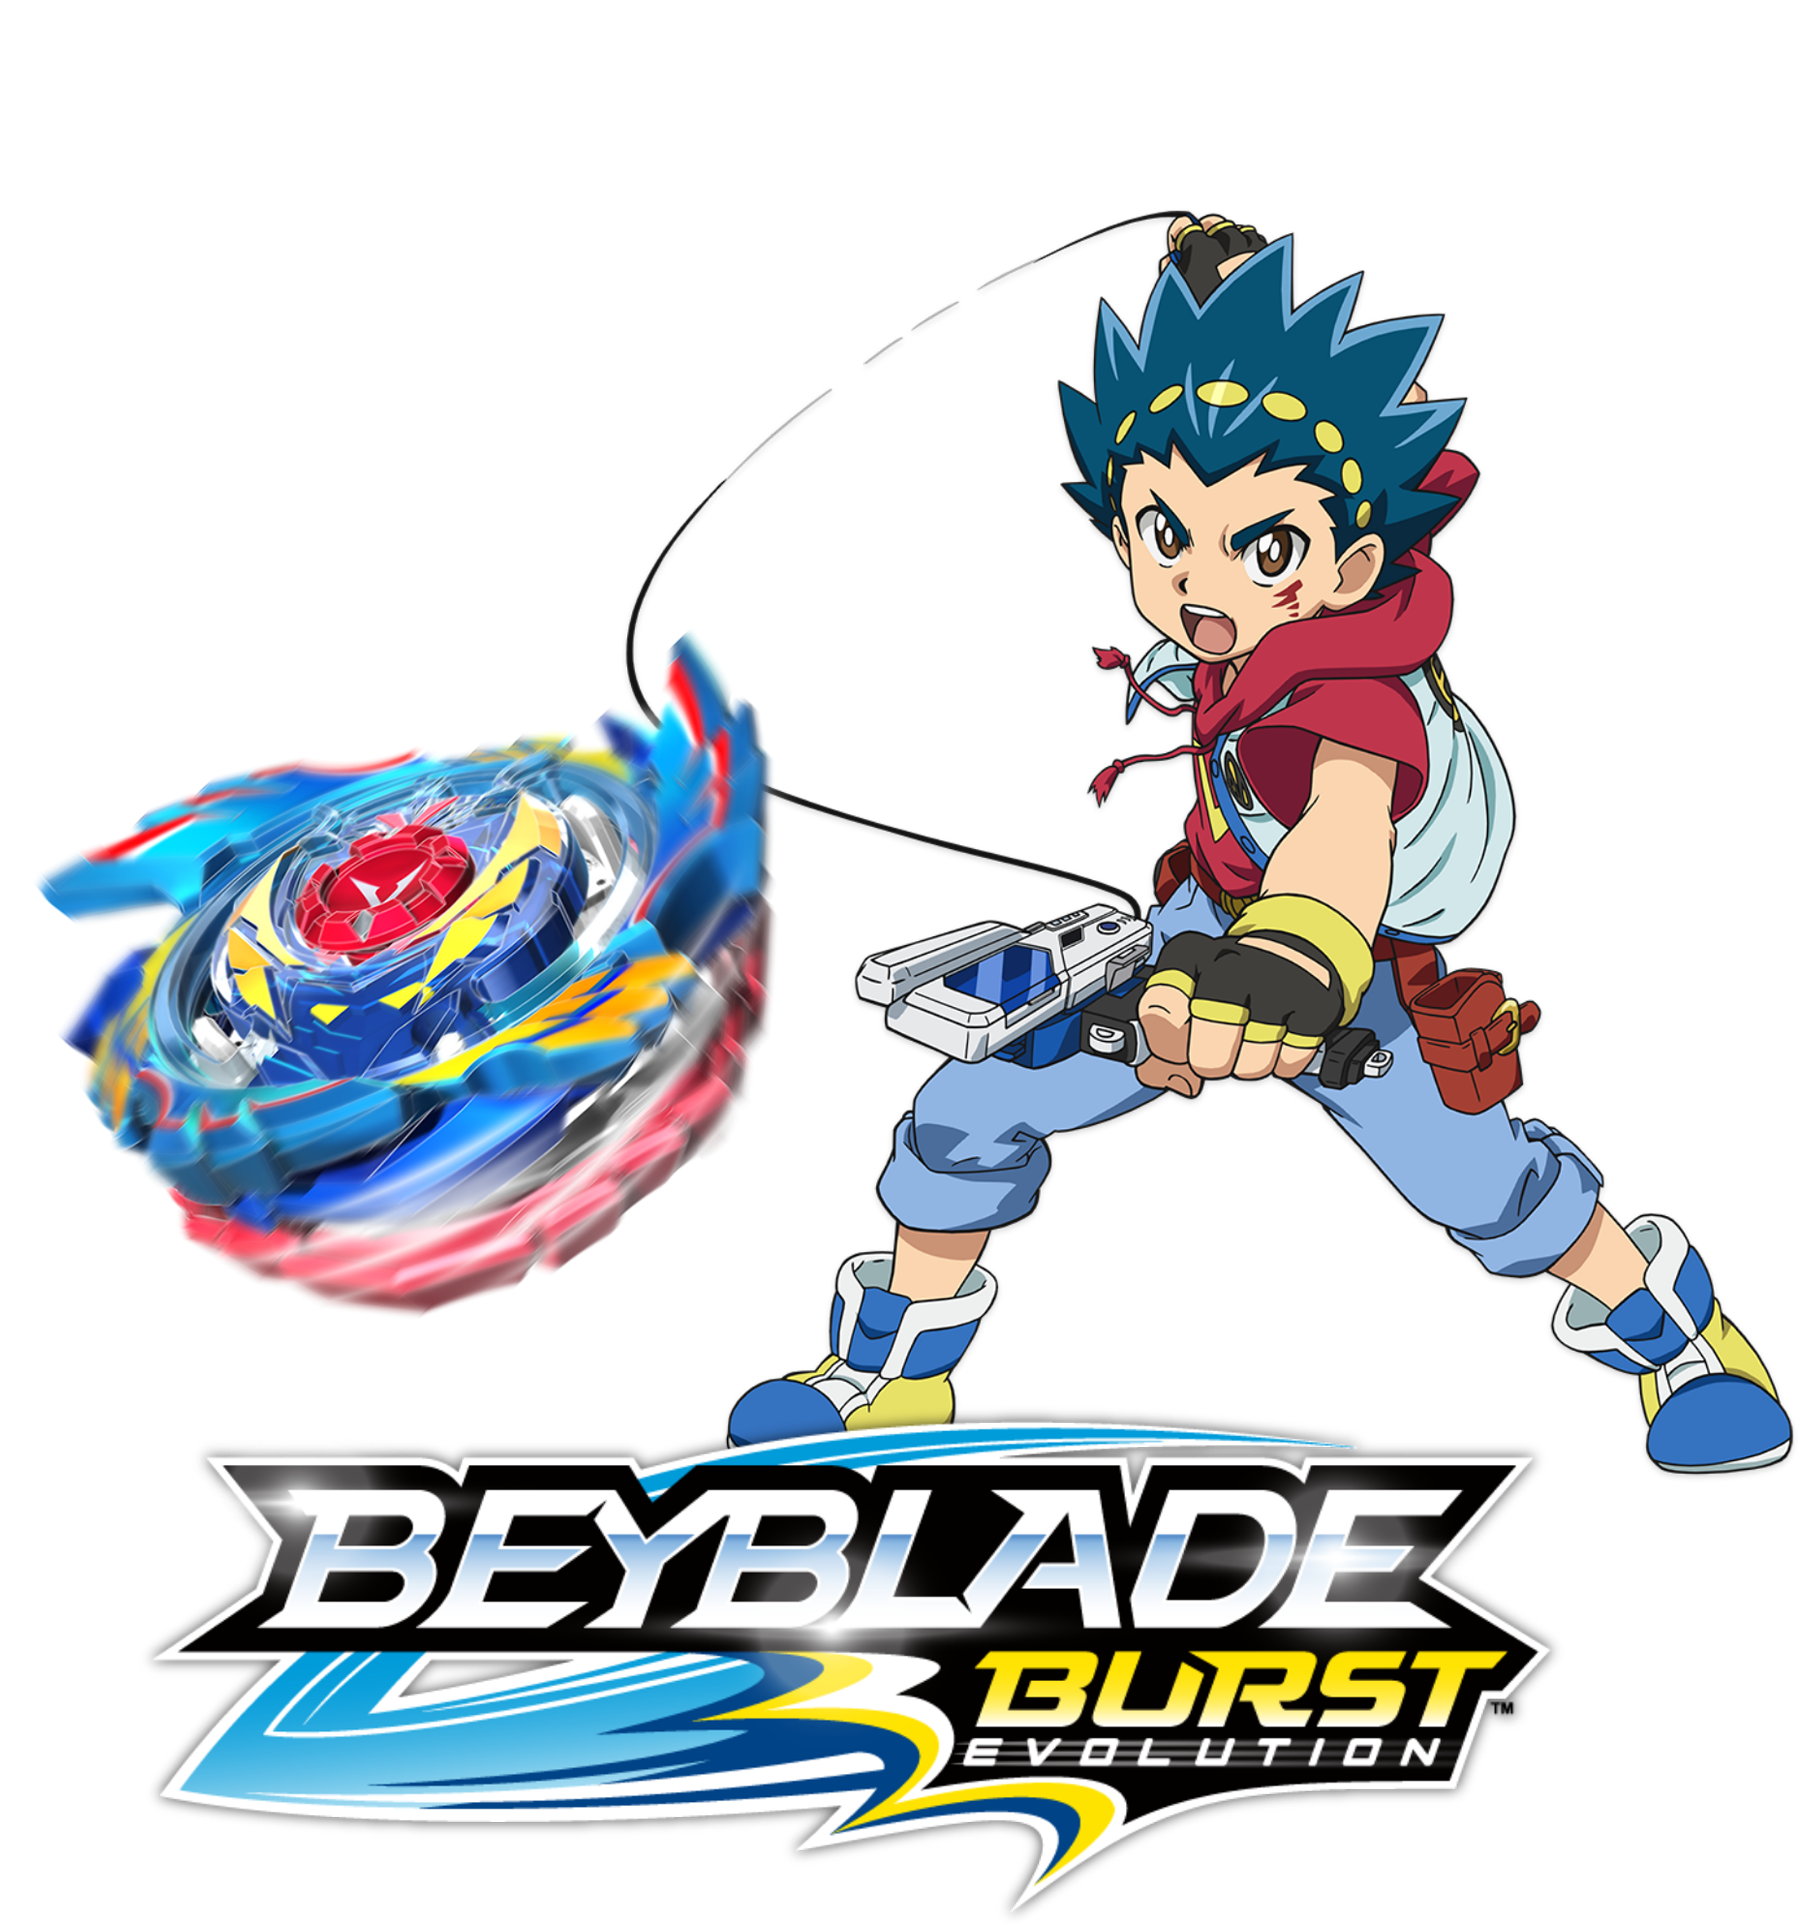 the beyblade brand is